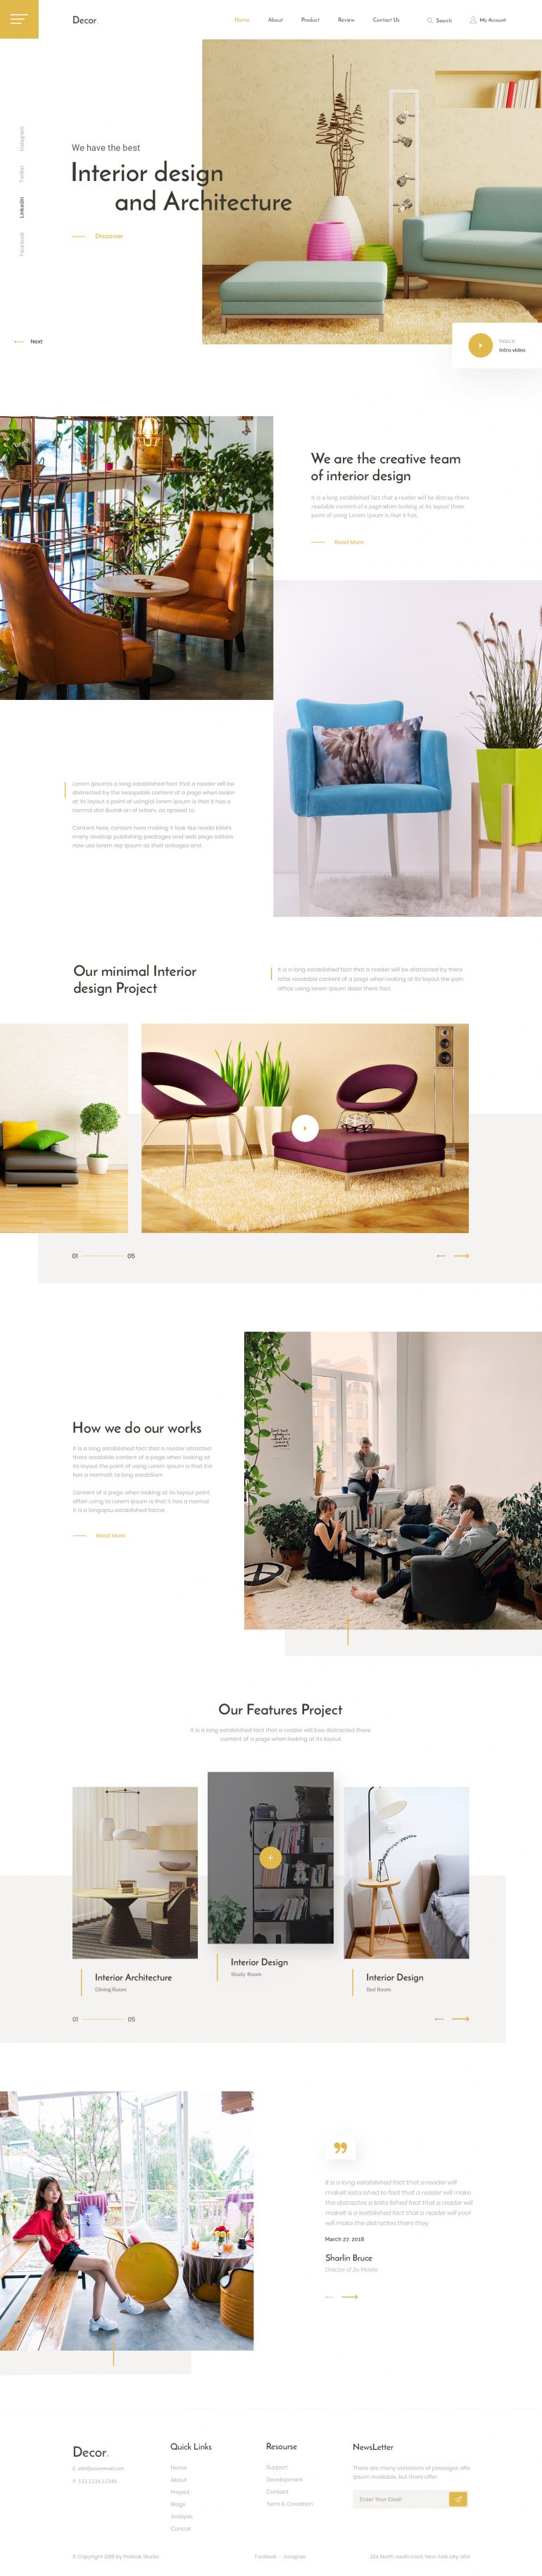 Interior Design – Landing Page by Saiful Khan